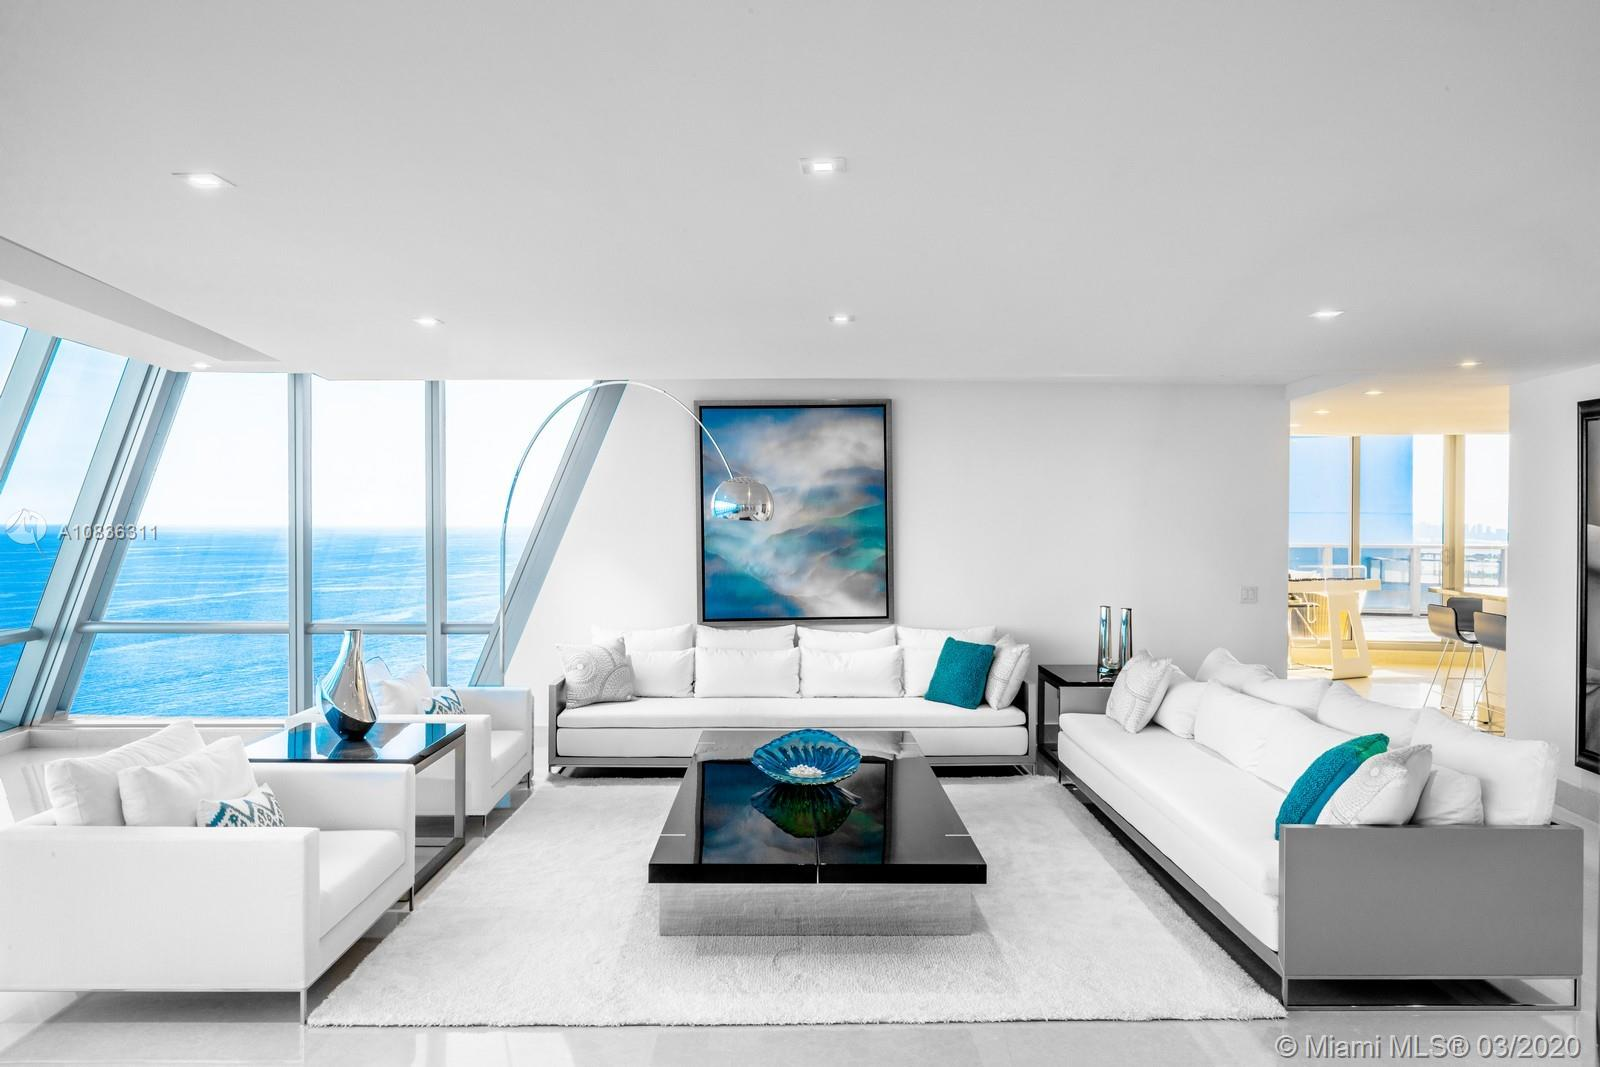 image #1 of property, Jade Ocean Condo, Unit 4803